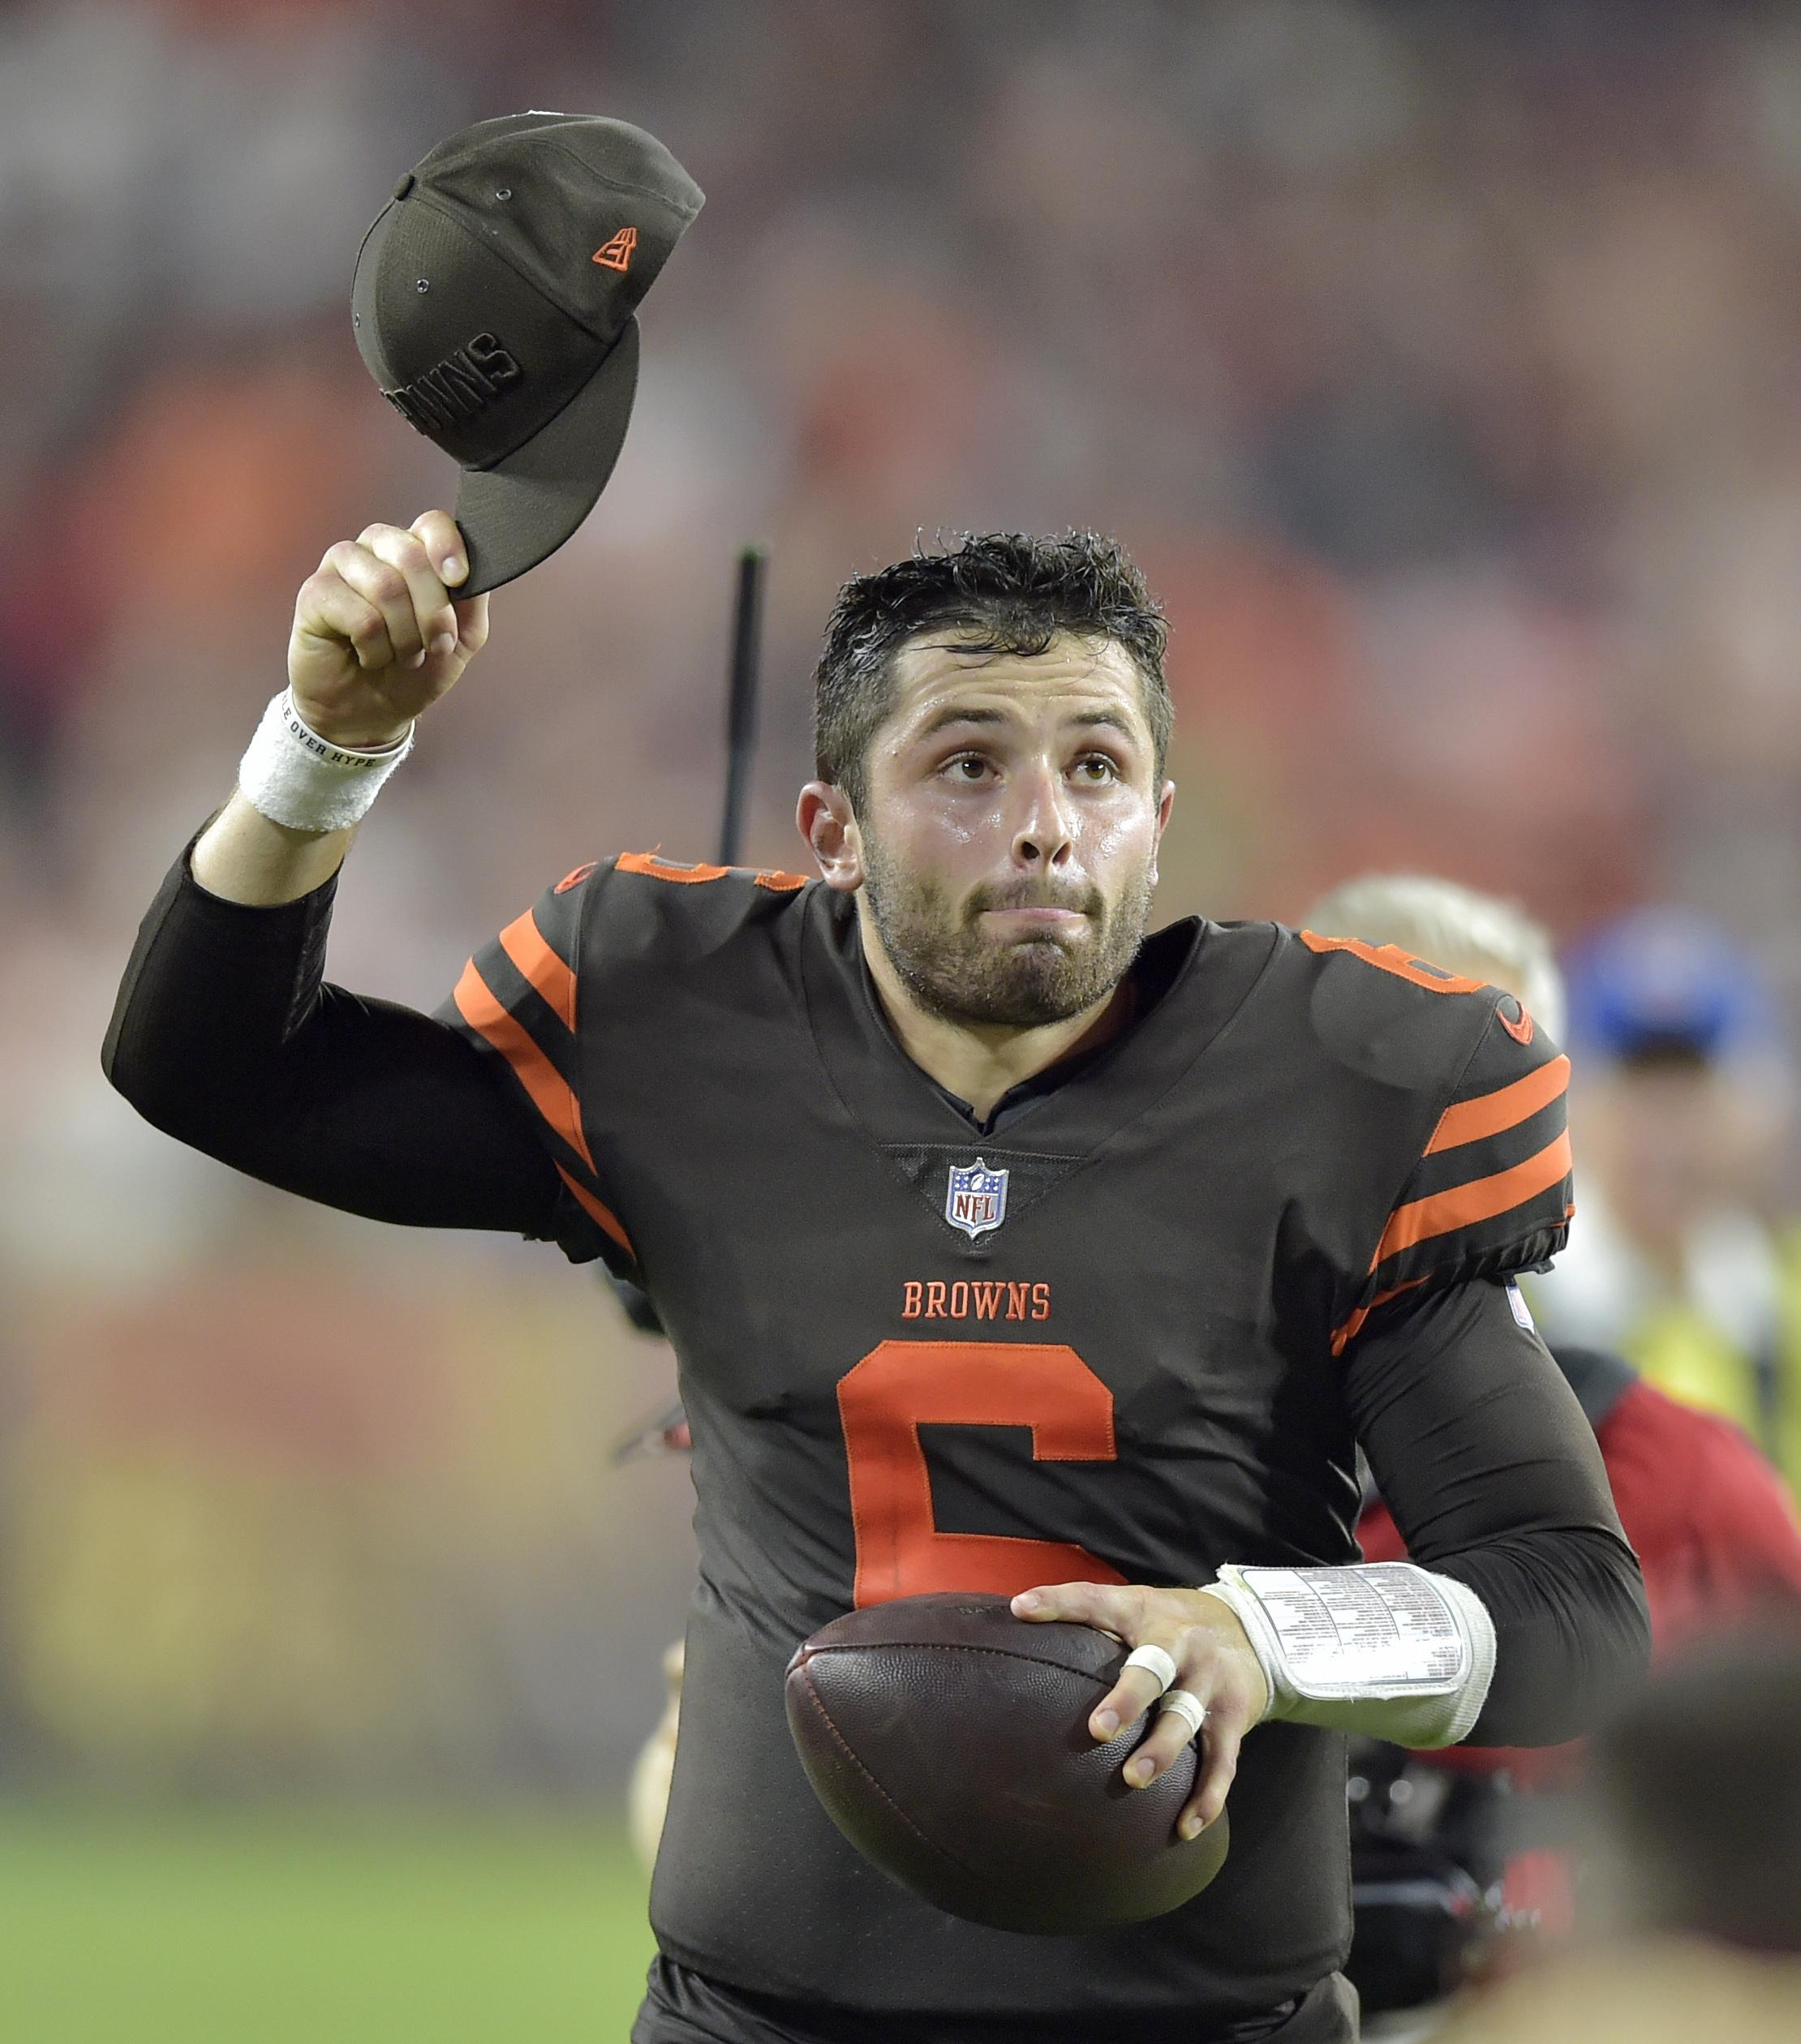 Baker Mayfield shone on his debut as the Browns overturned a 14-0 deficit